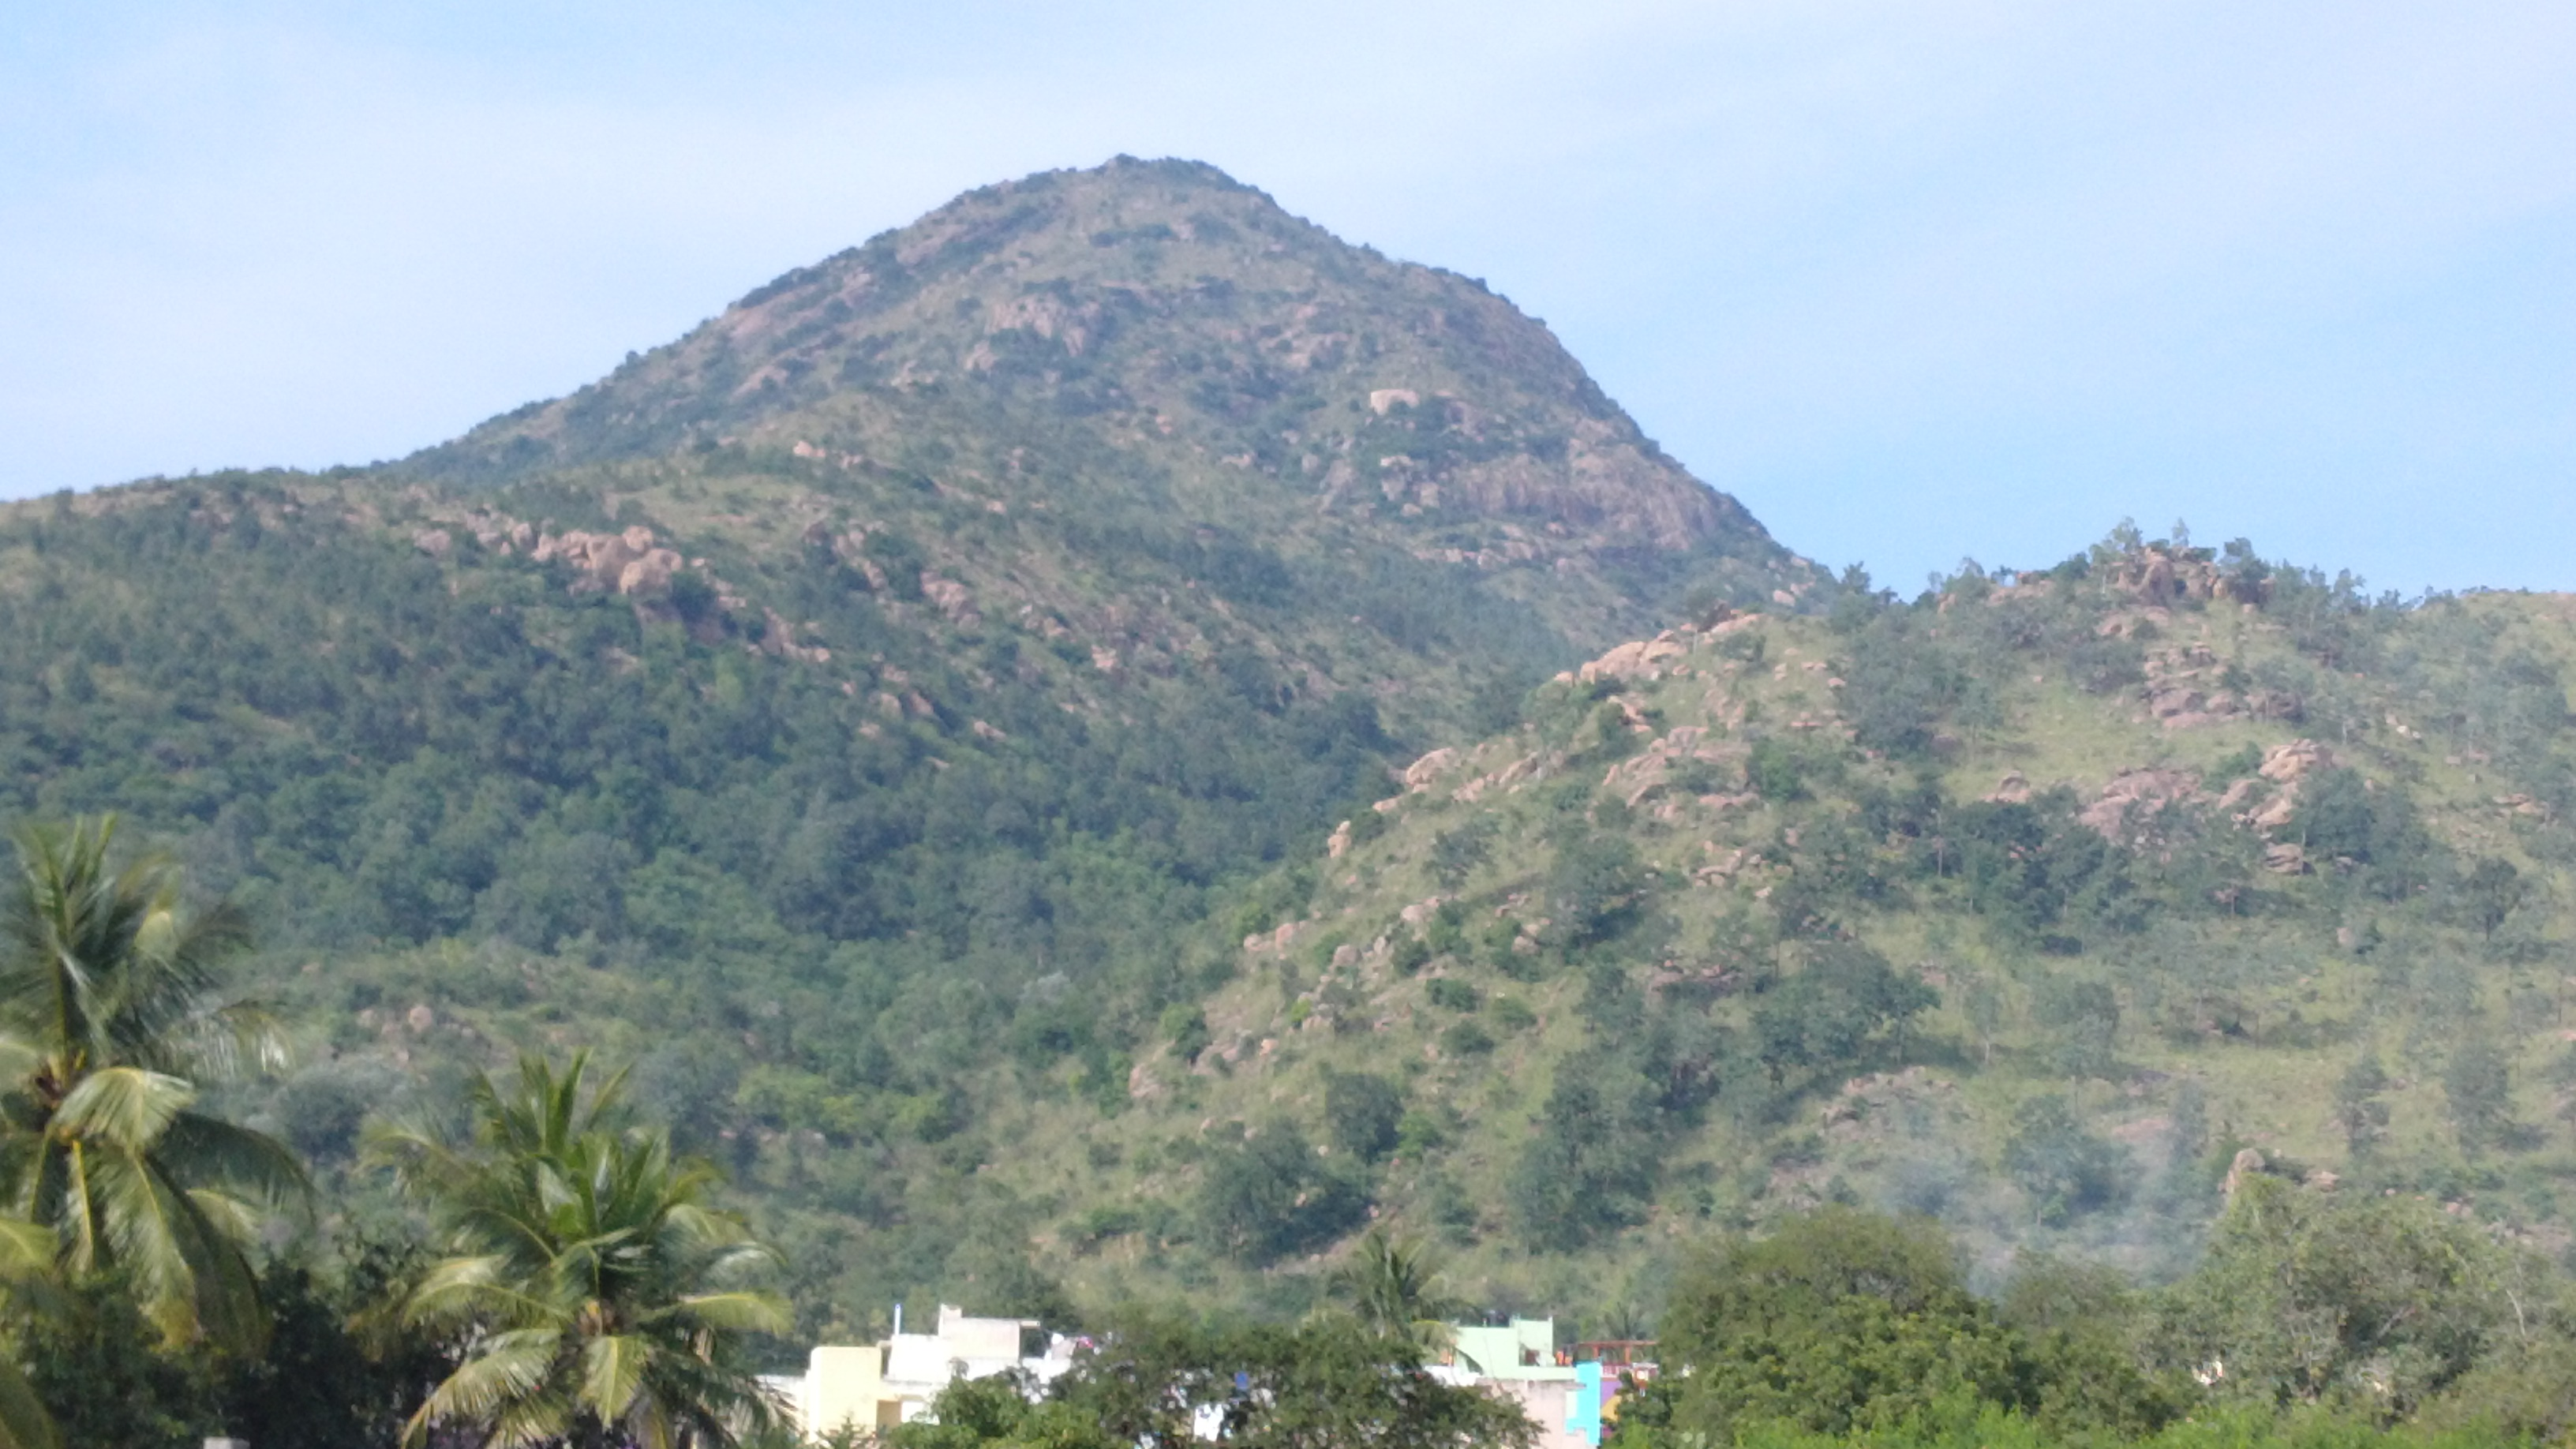 The call of Arunachala